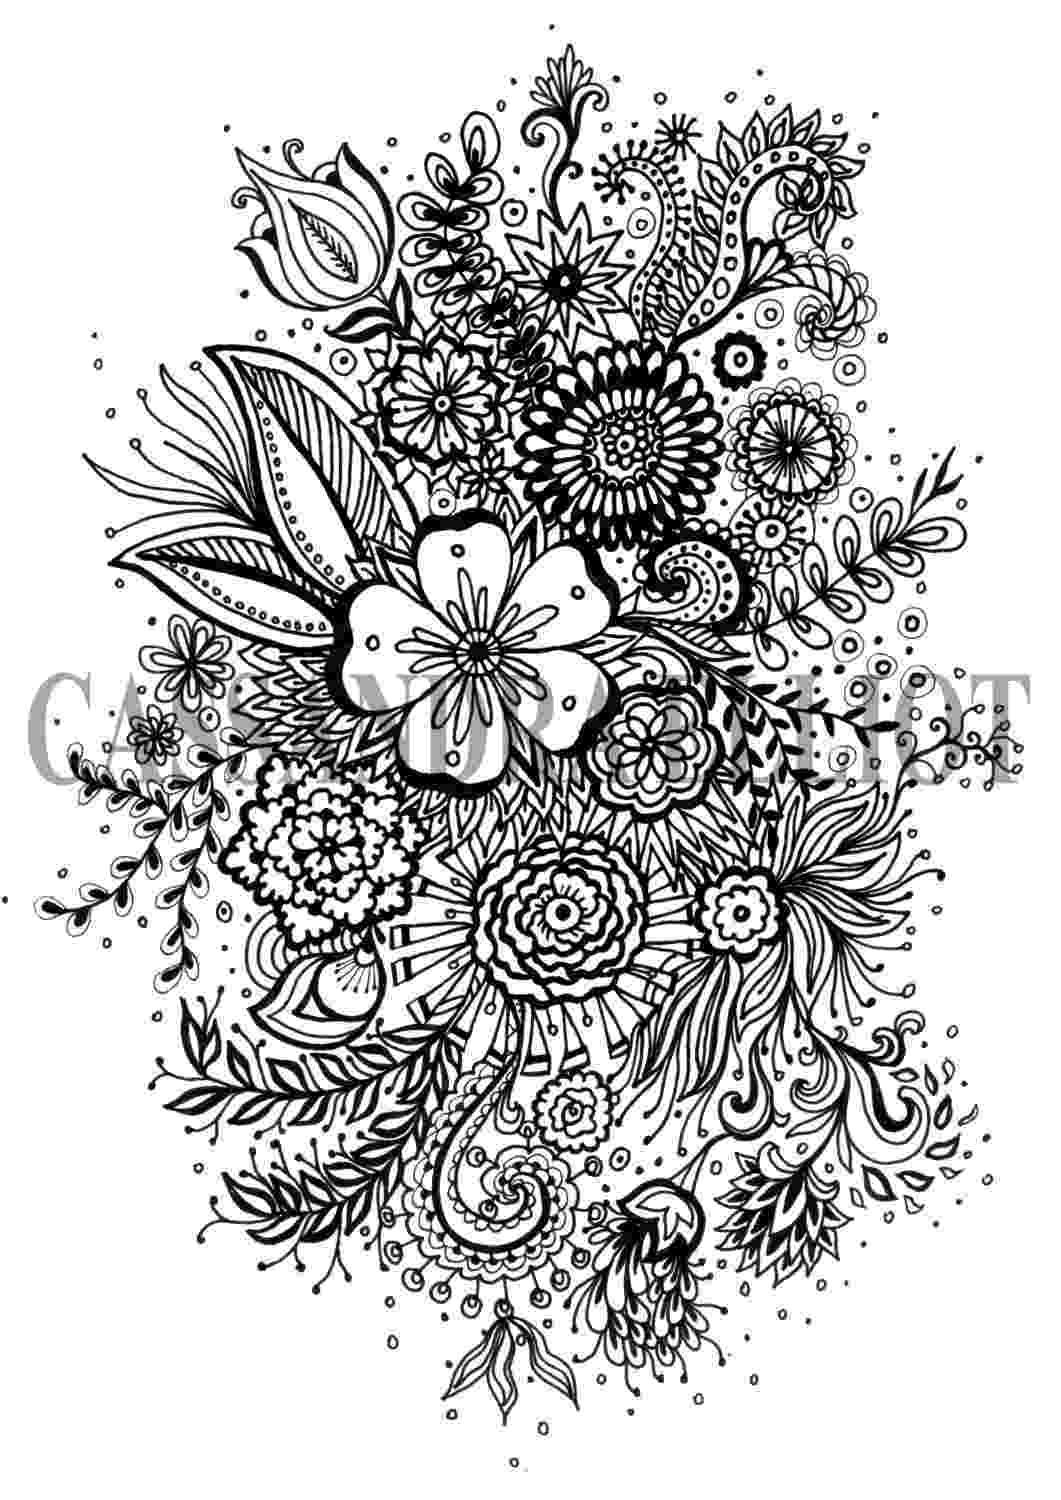 printable flower coloring pages for adults printable adult colouring page digital download print flower for adults flower coloring printable pages